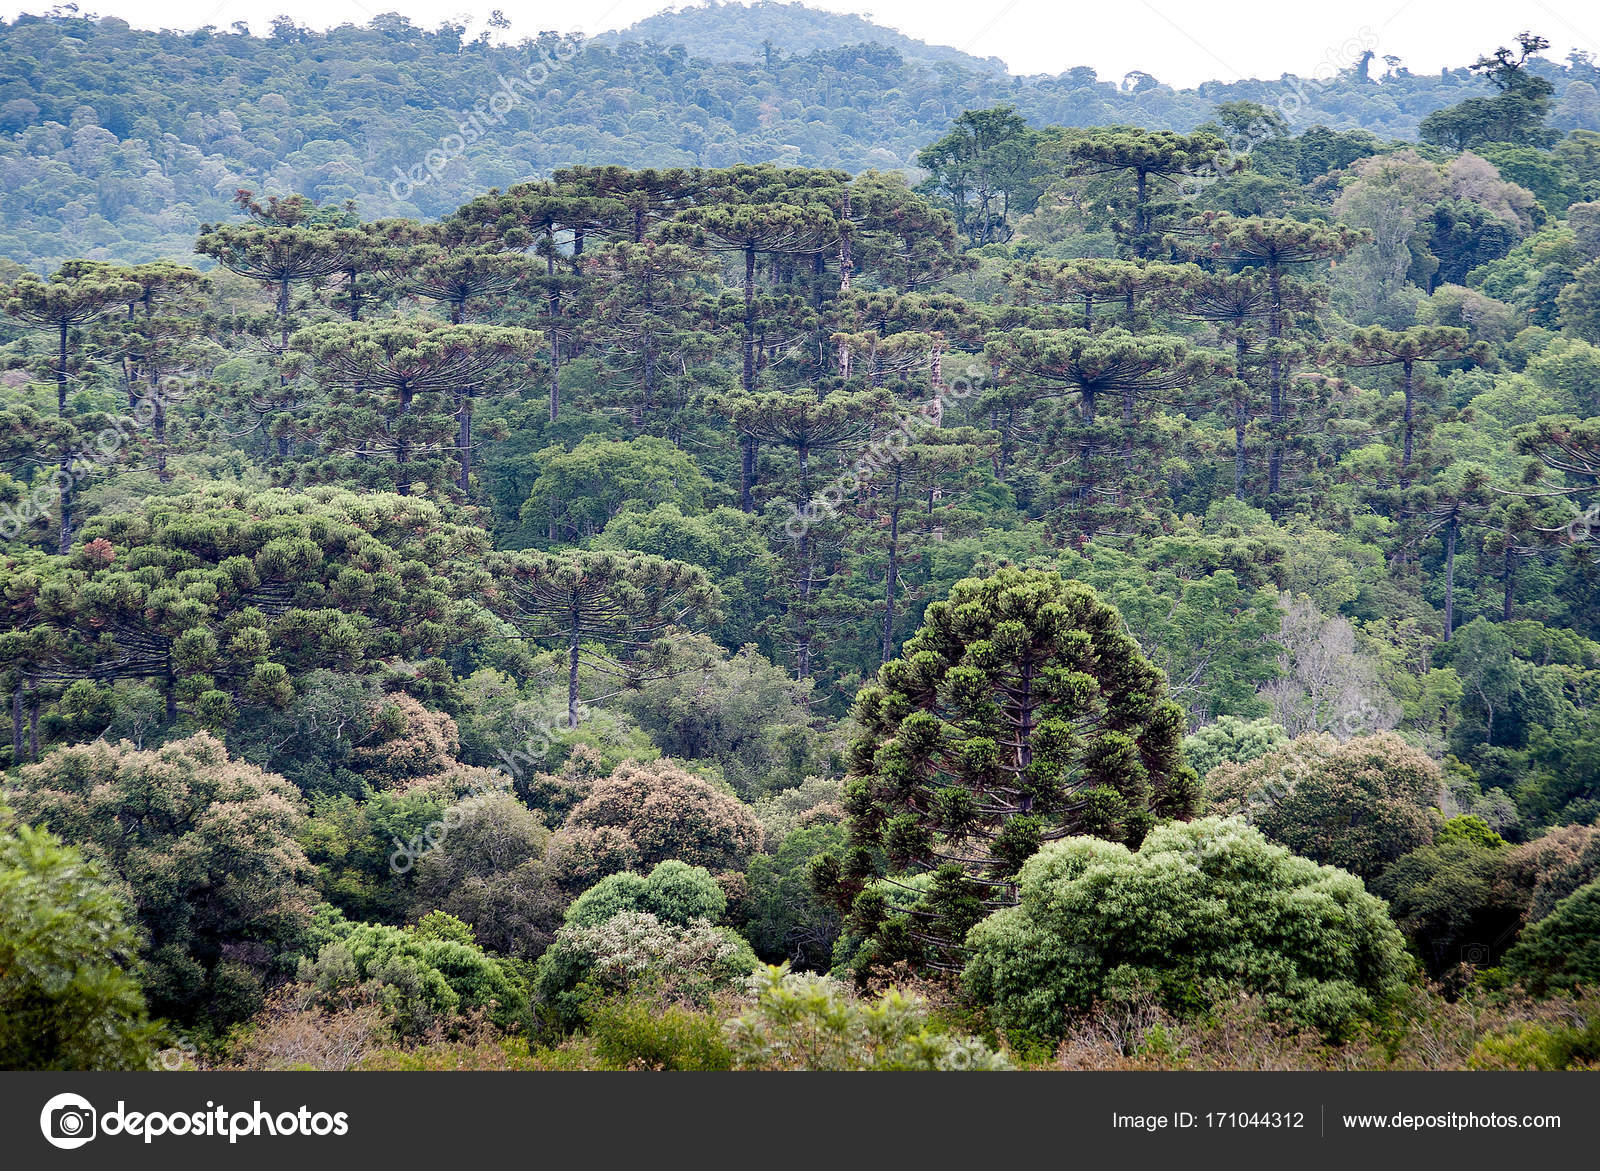 Araucaria forest in the Mountains